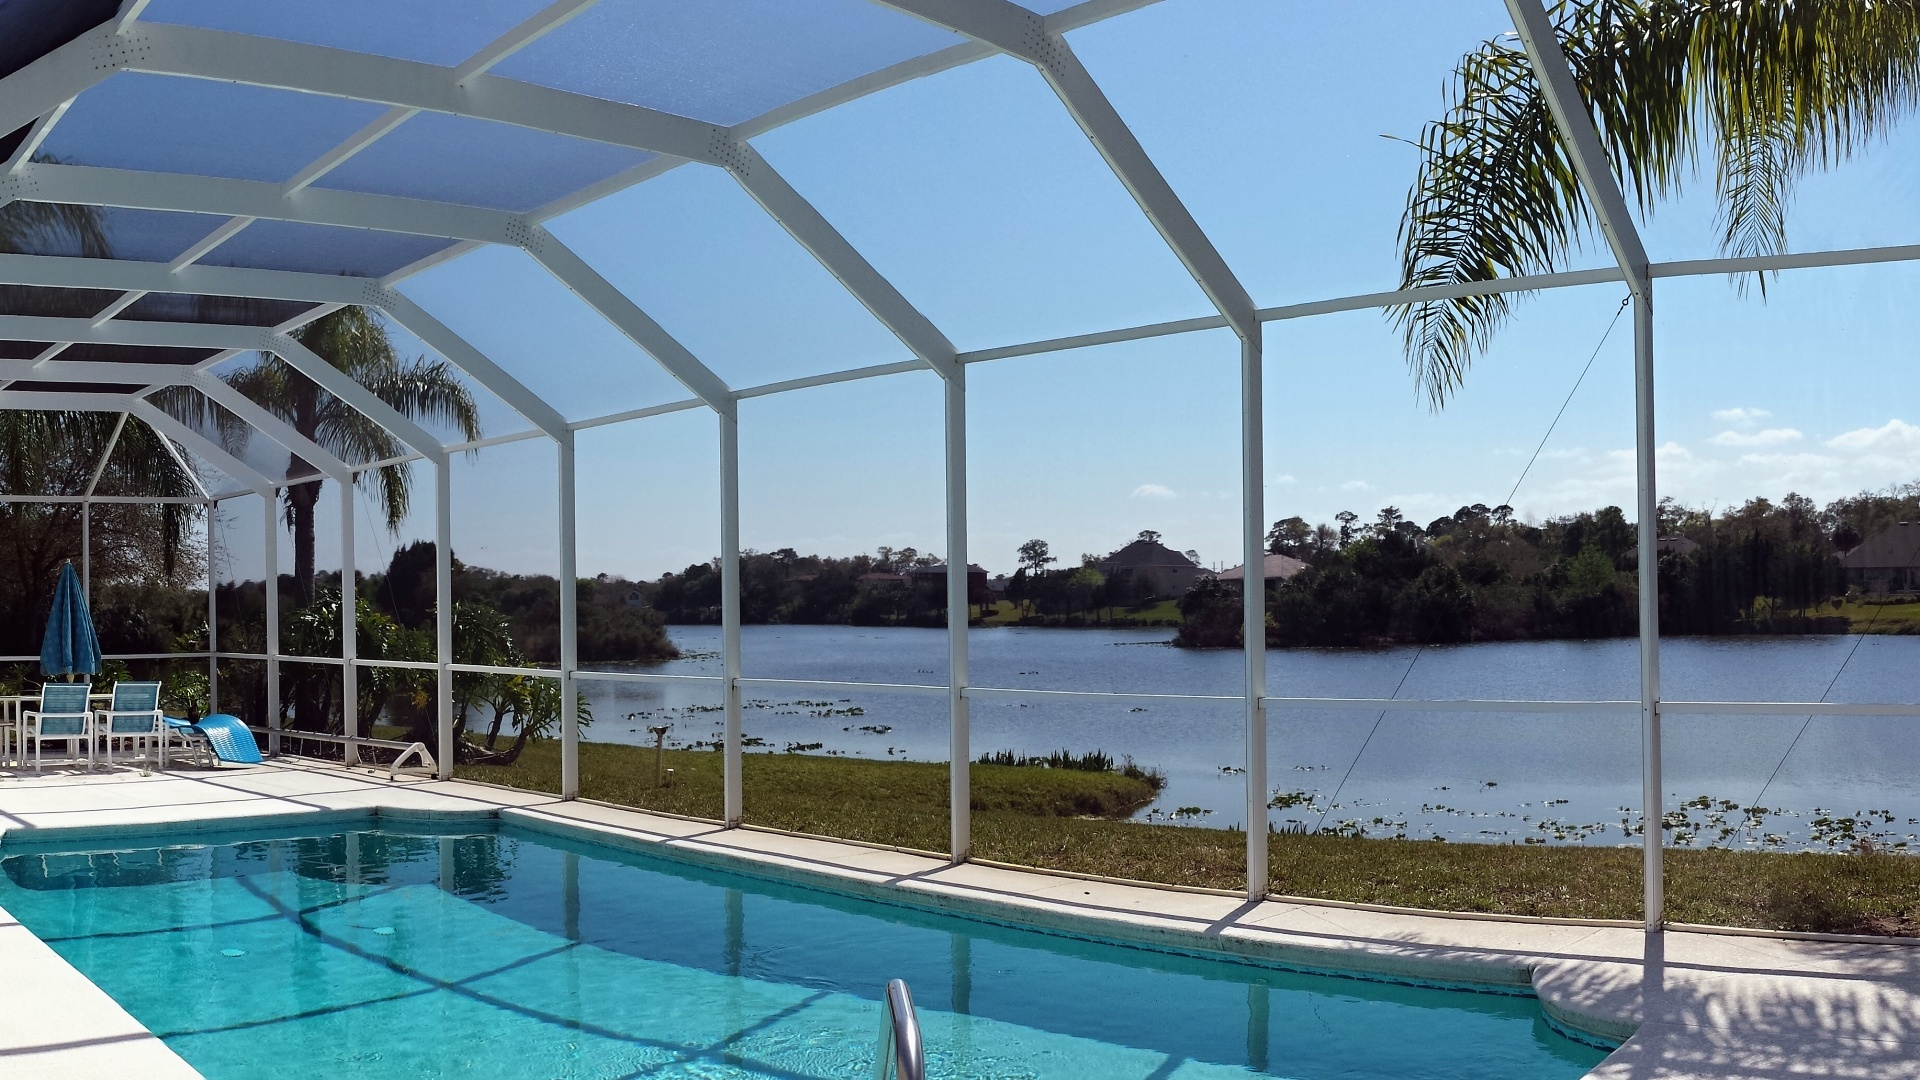 pool-screen-repair-ormond-beach-16-1080p.jpg